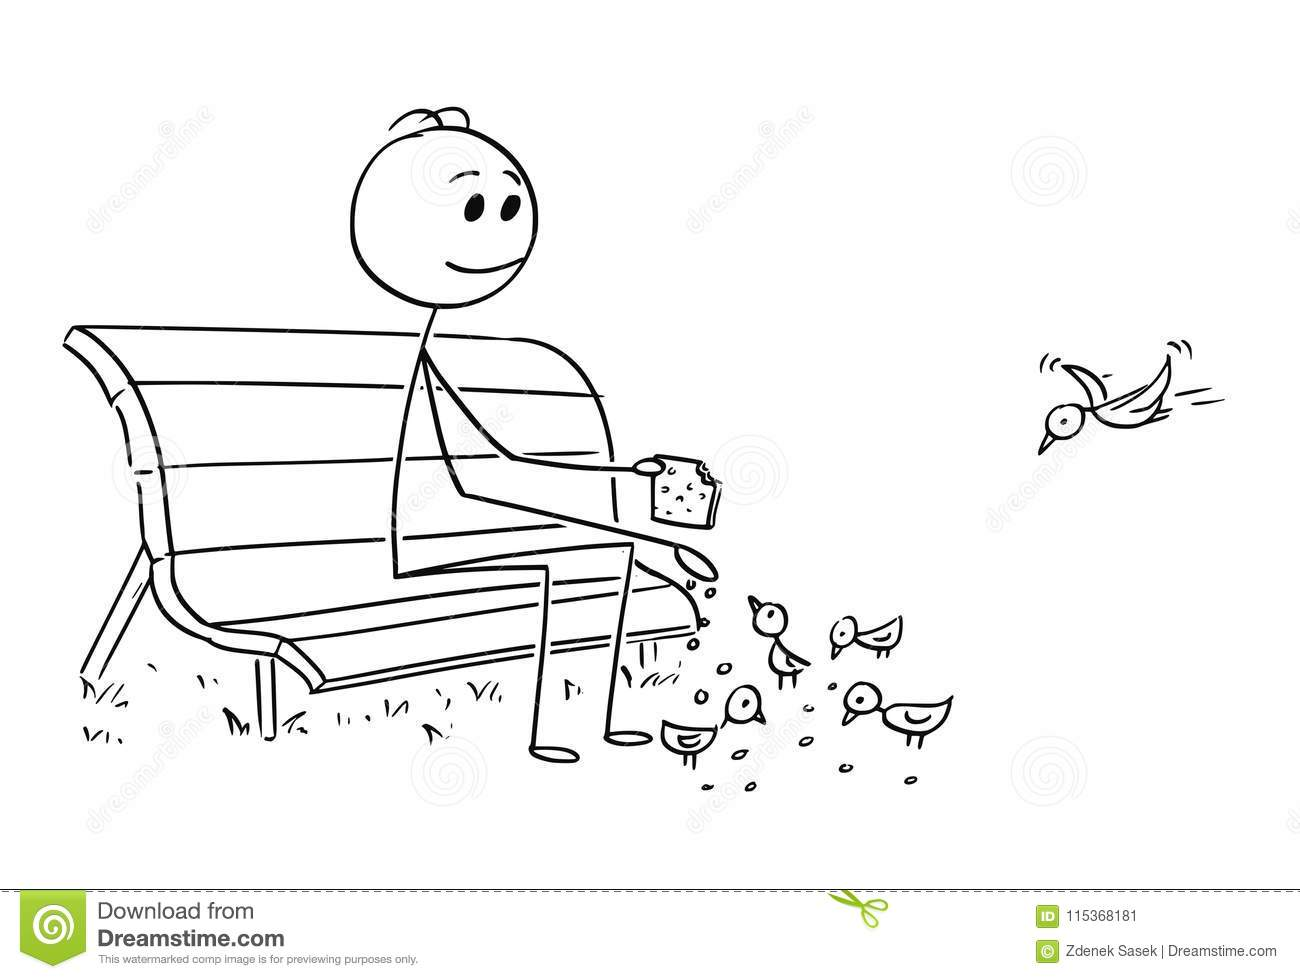 Cartoon Of Man Or Businessman Relaxing On Park Bench And